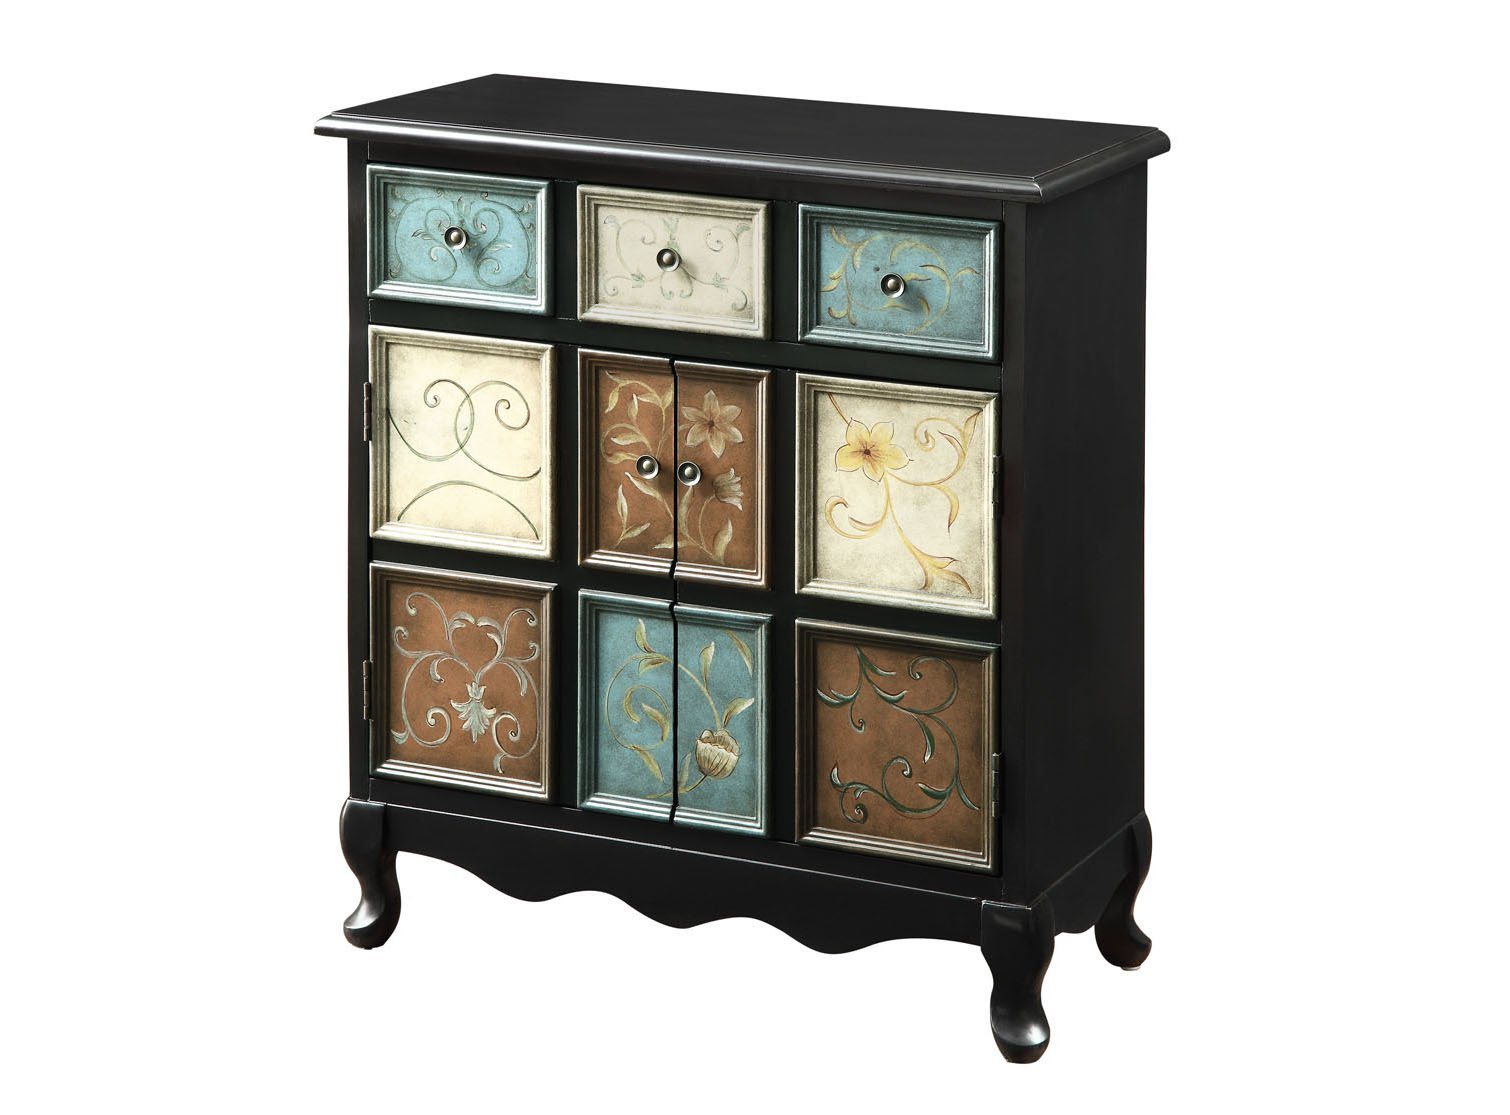 Monarch Apothecary Bombay Chest, Distressed Black/Multi-Color - Elegant transitional shape Made of wood Distressed hand-painted multicolor finish - dressers-bedroom-furniture, bedroom-furniture, bedroom - 71VuWP4s07L -